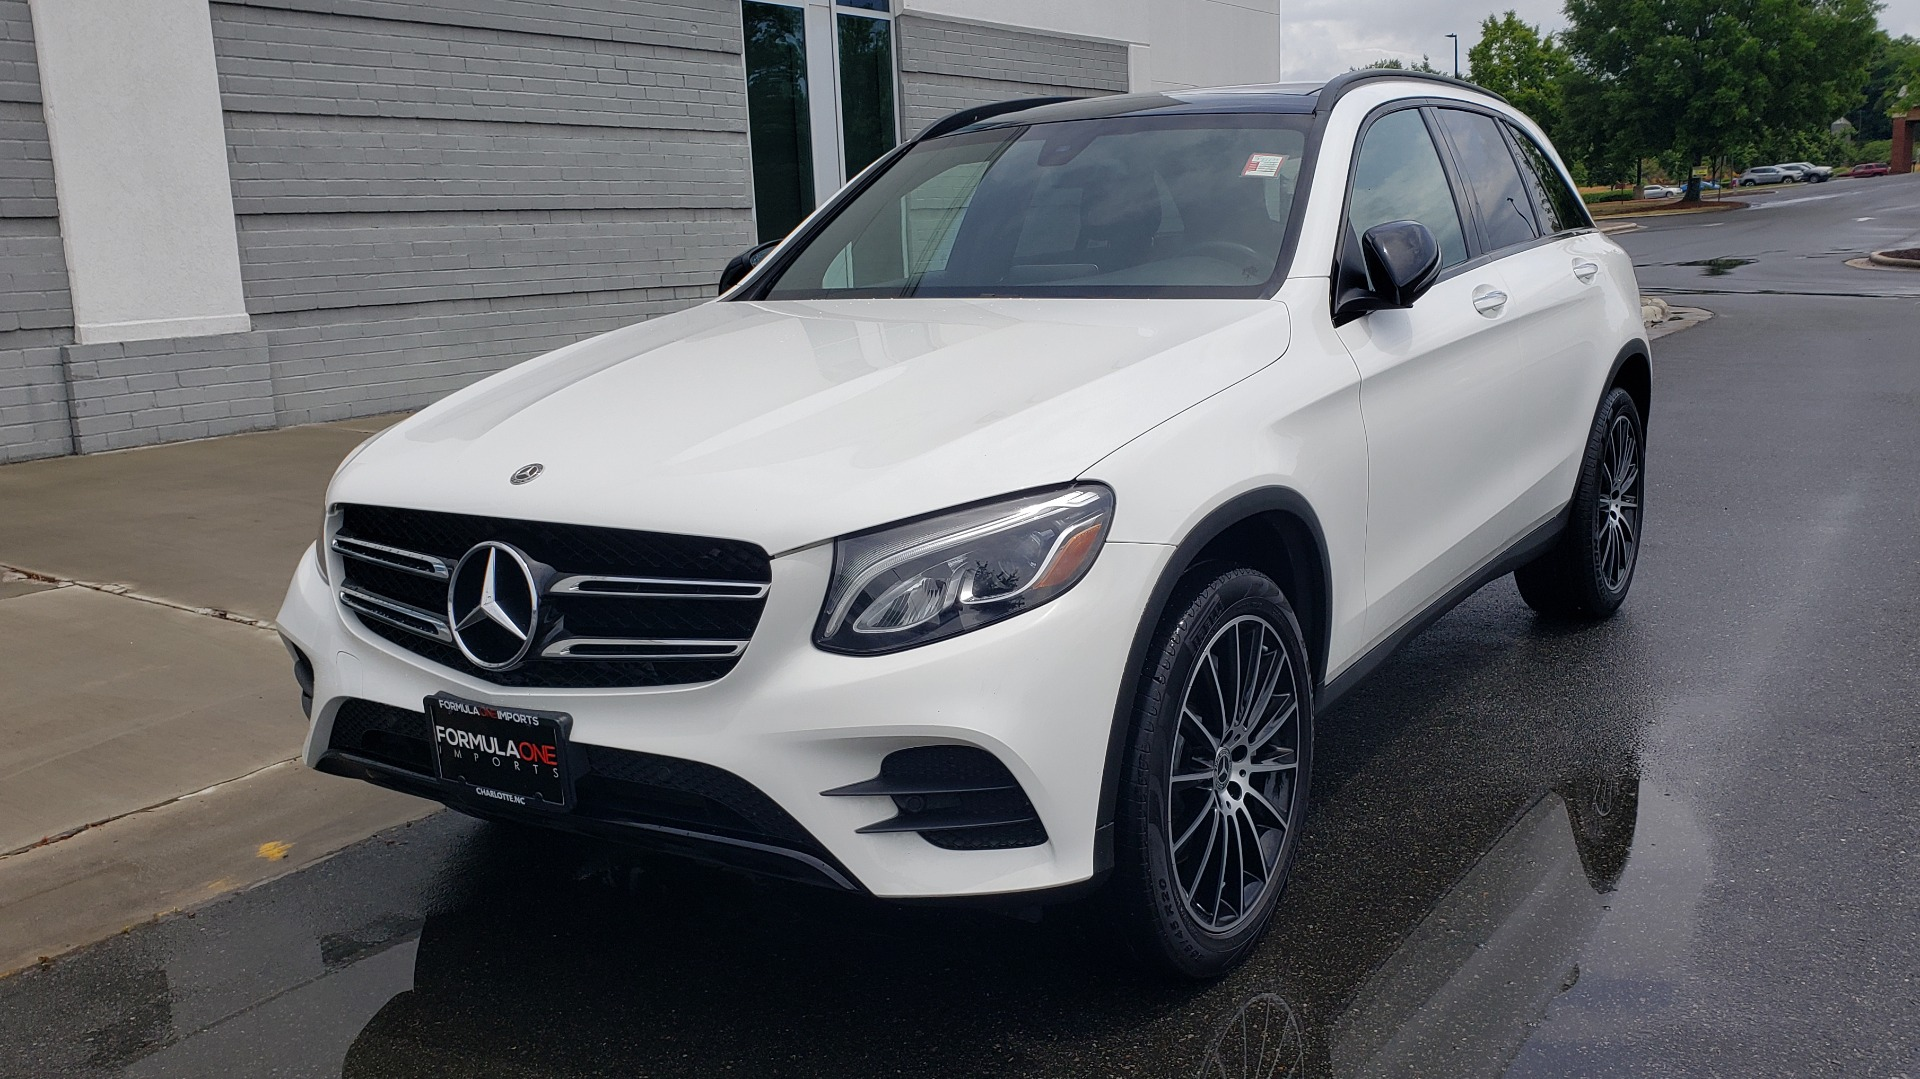 Used 2018 Mercedes-Benz GLC 300 4MATIC PREMIUM / NAV / BURMESTER SND / PANO-ROOF / REARVIEW for sale $35,495 at Formula Imports in Charlotte NC 28227 3